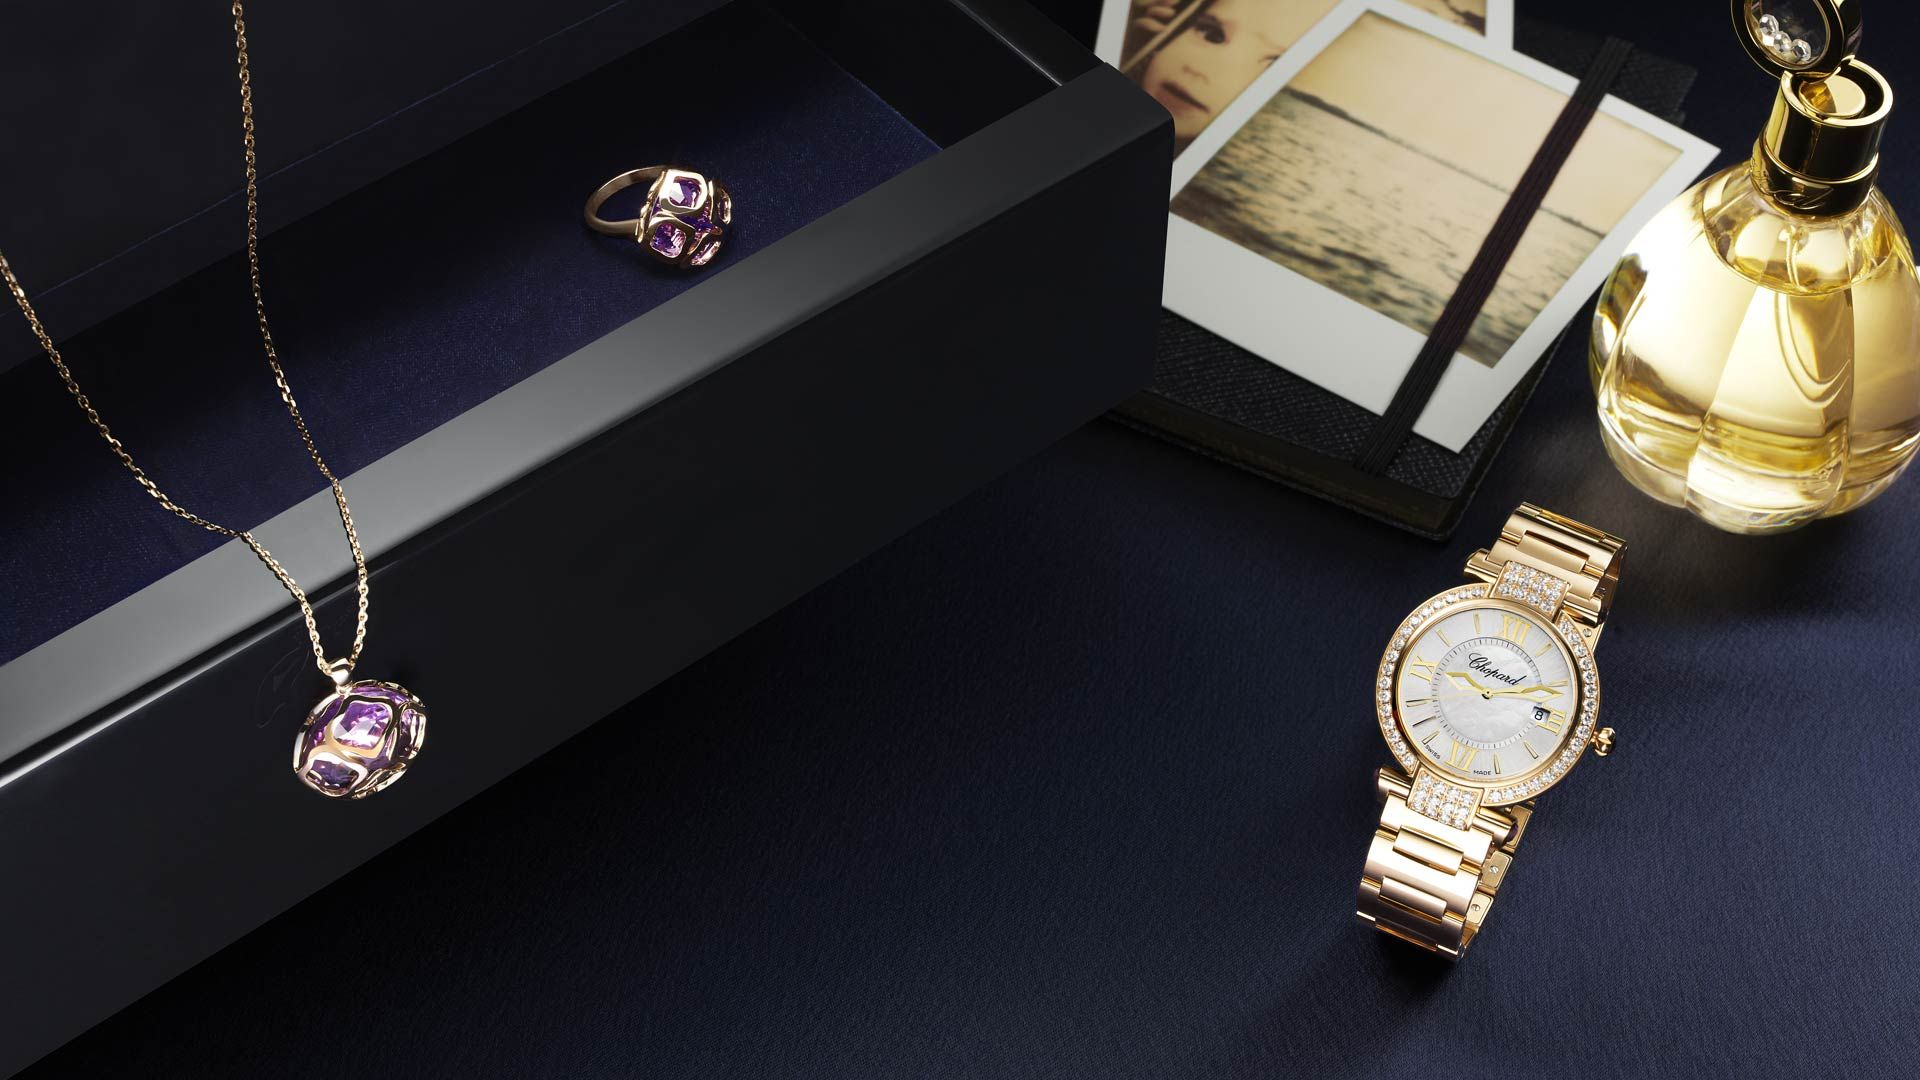 Pin By Vickygiannouli On Legendes Eclatantes Jewels Gold Watch Chopard